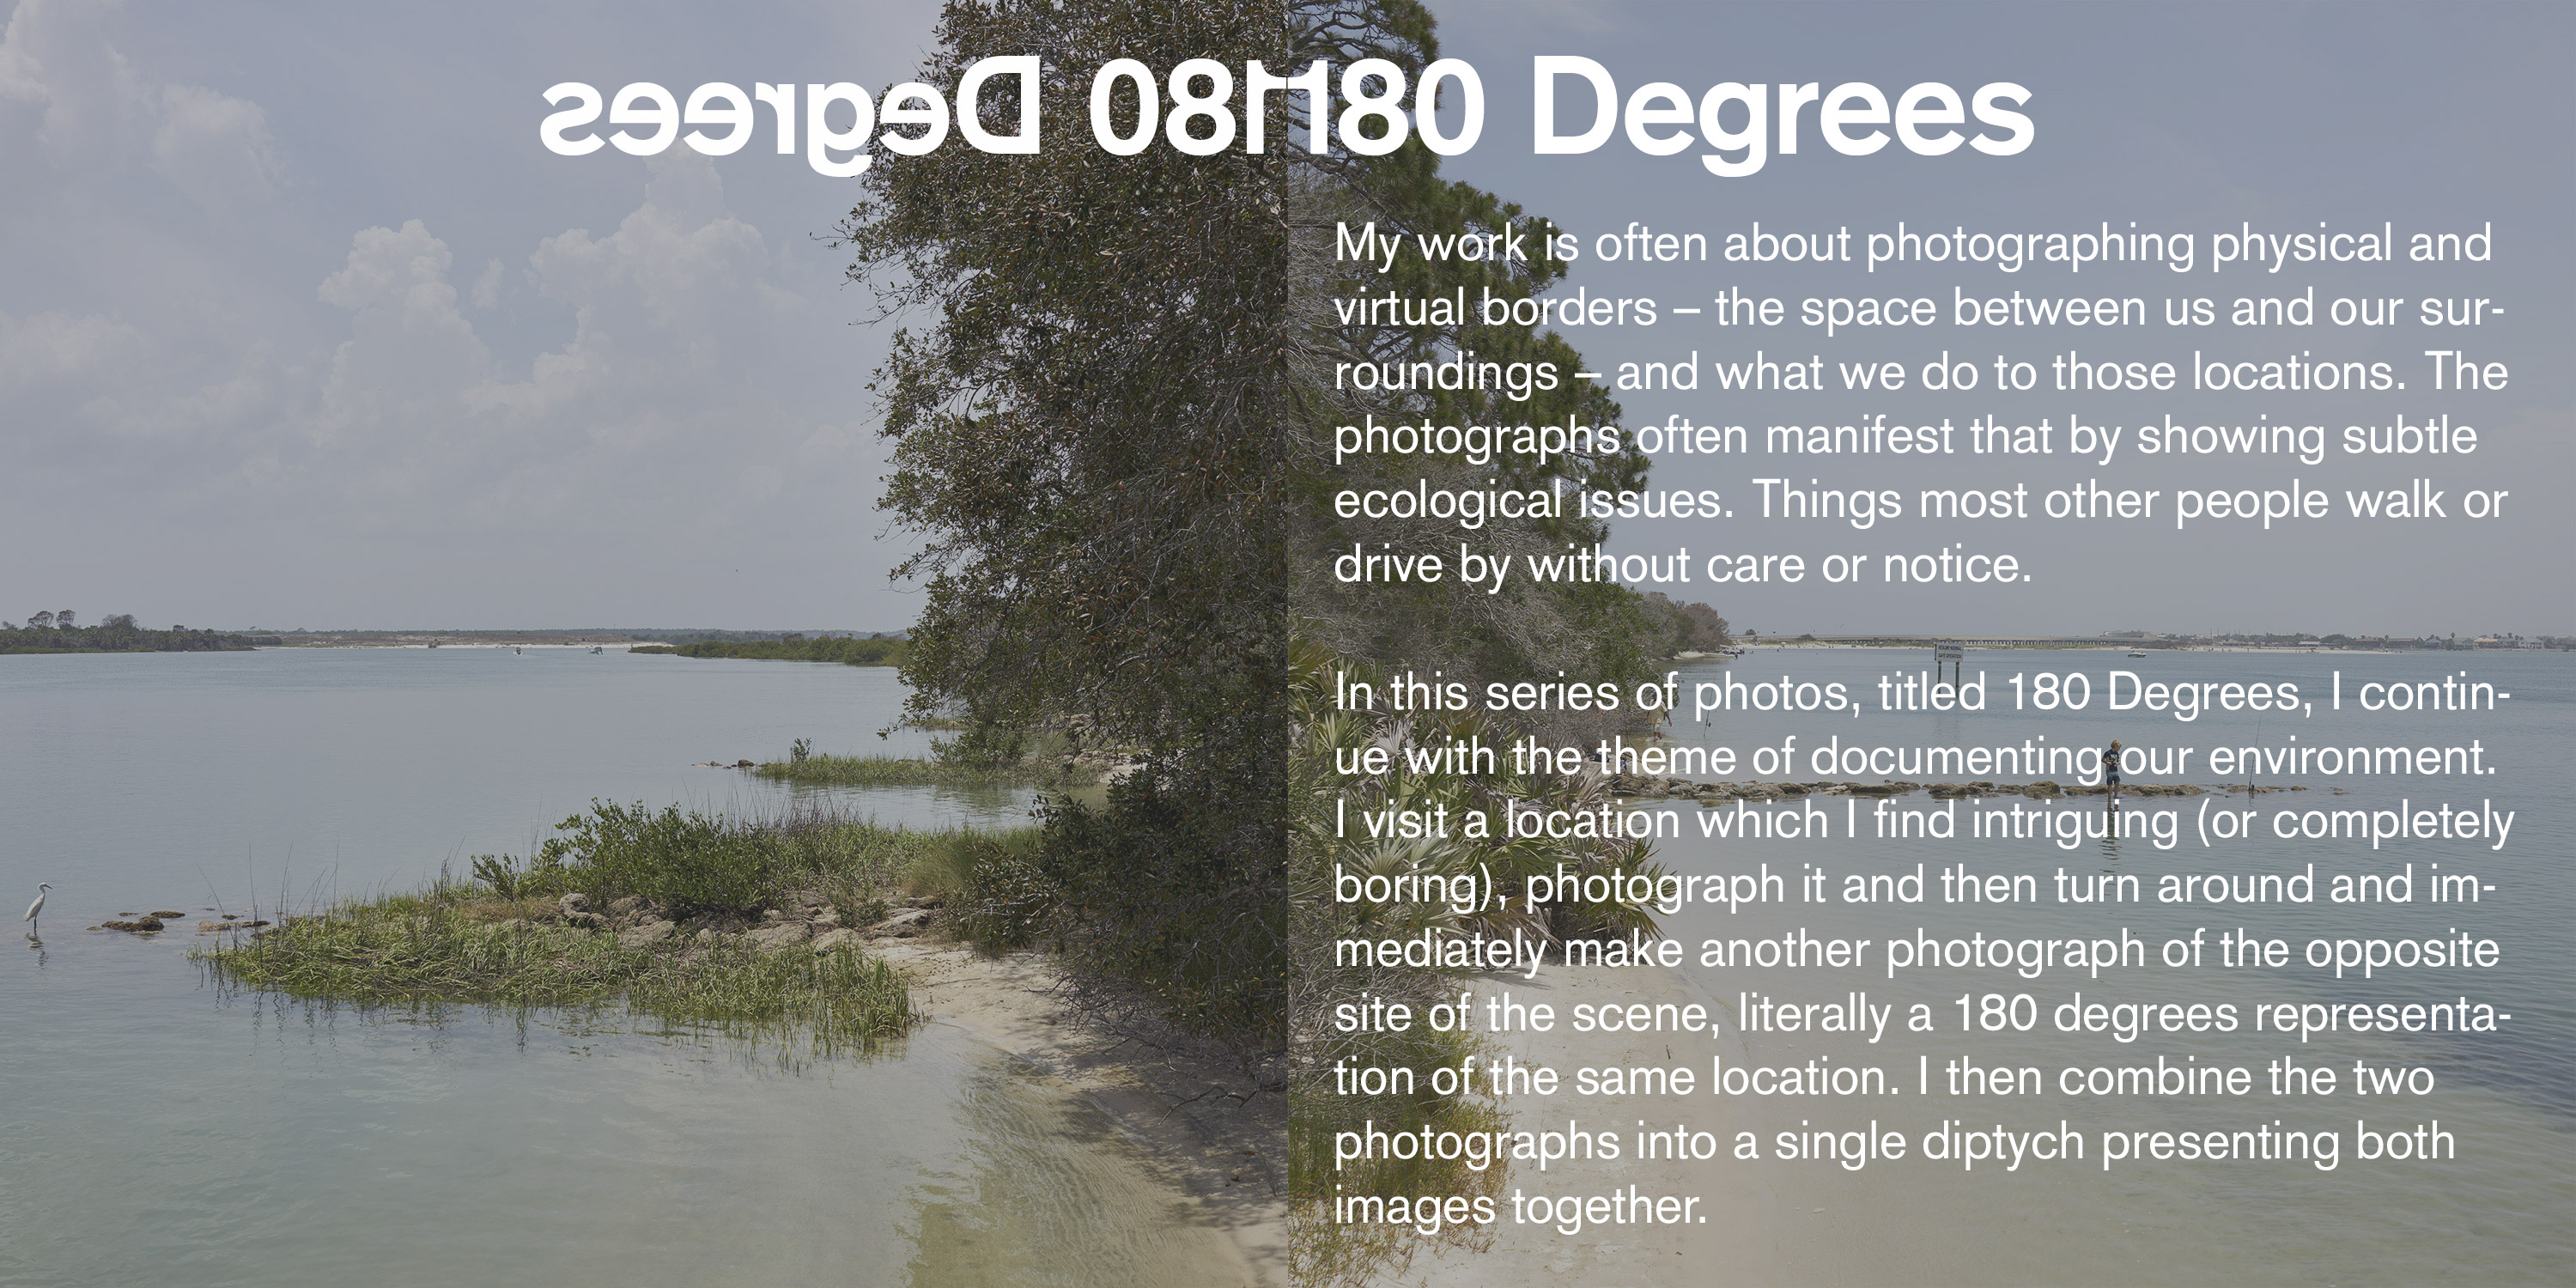 180-Degrees-intro-text-for-website